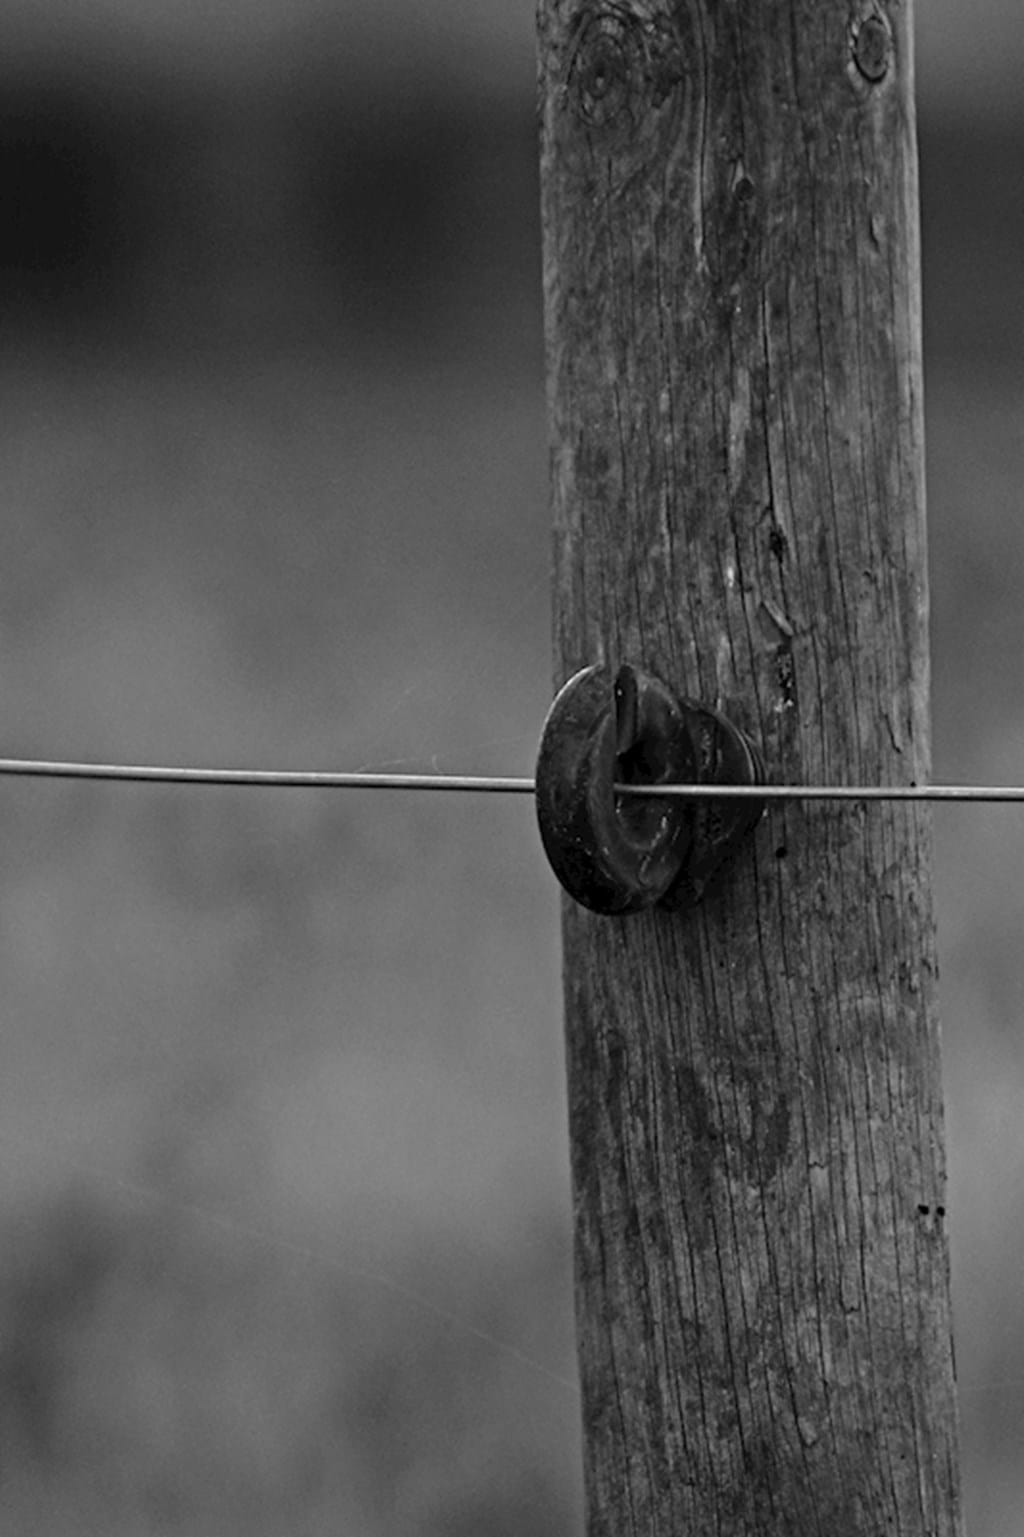 Poster: Wire on pole - Digital